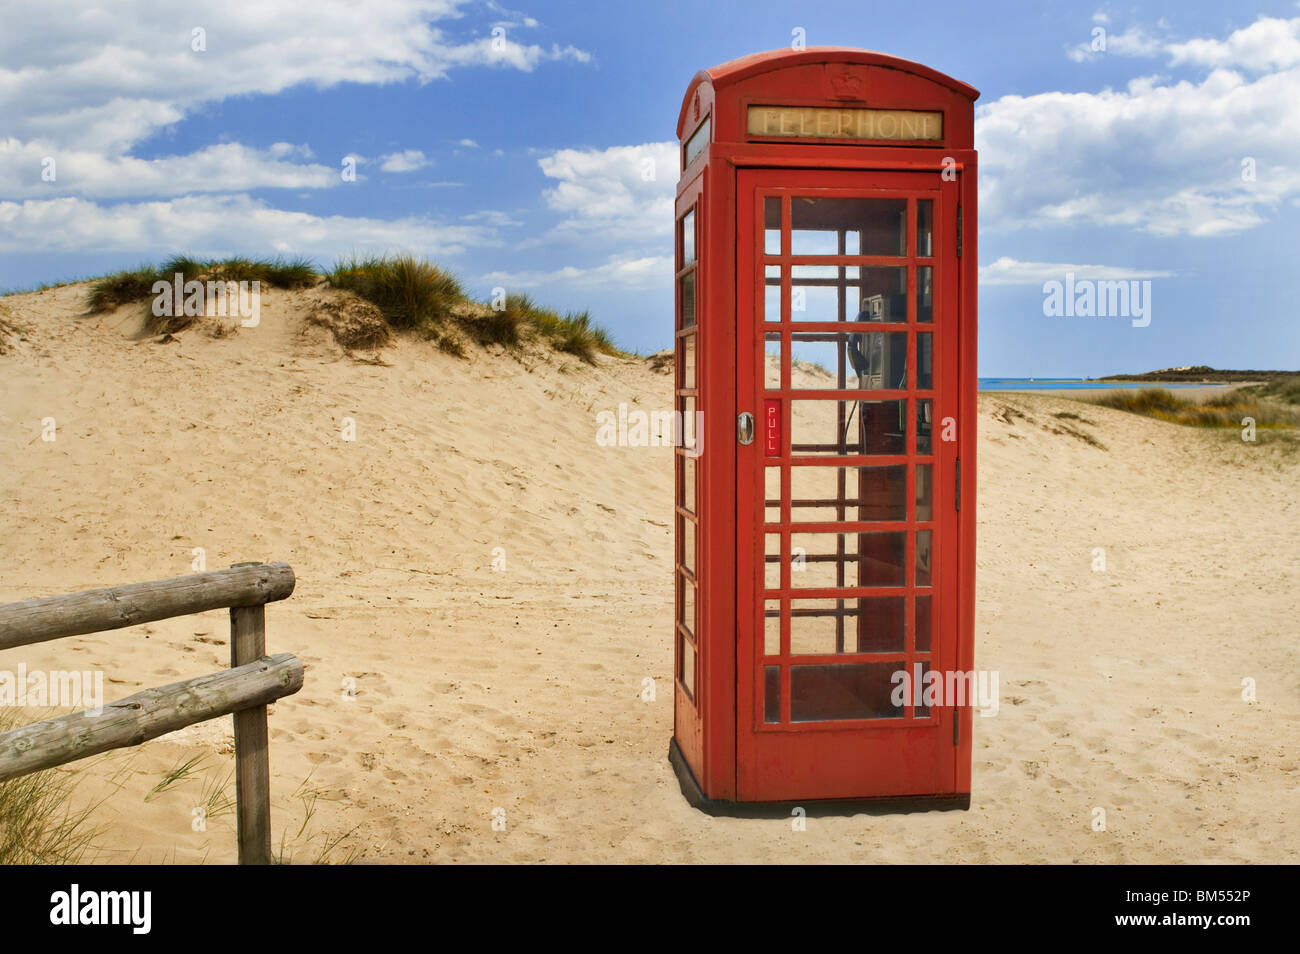 Traditional red British telephone box still in service on the coastal sand dunes of Studland Peninsula, Dorset England - Stock Image